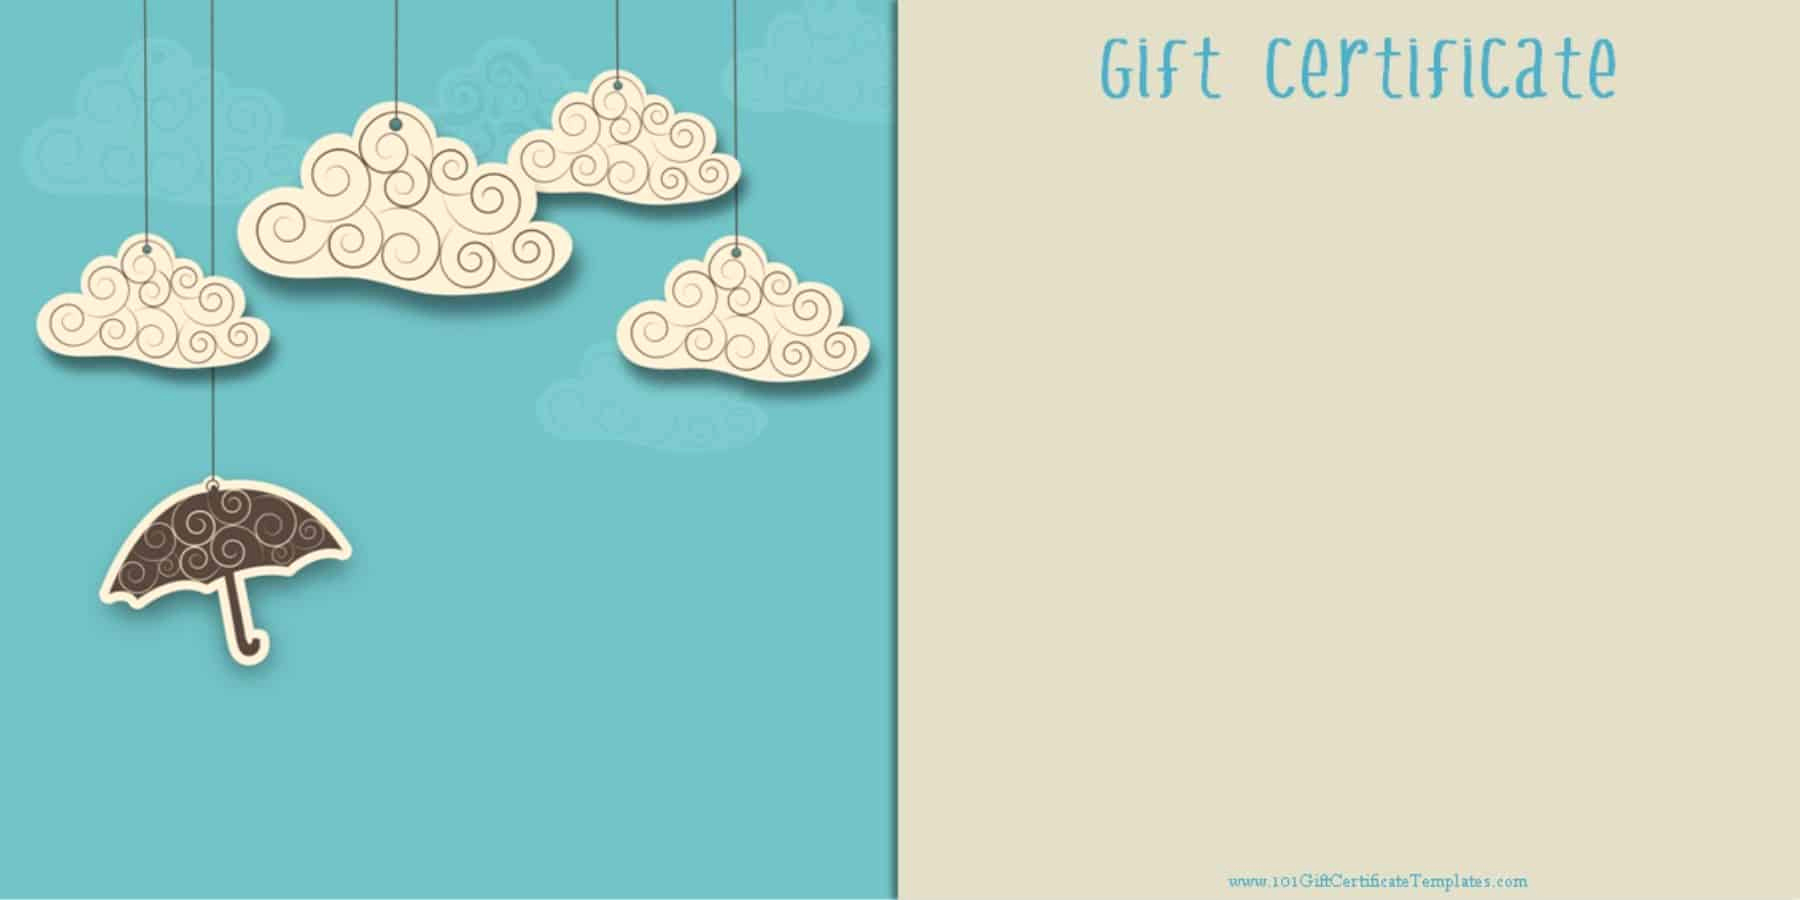 Template for Gift Certificate Fresh Printable Gift Certificate Templates